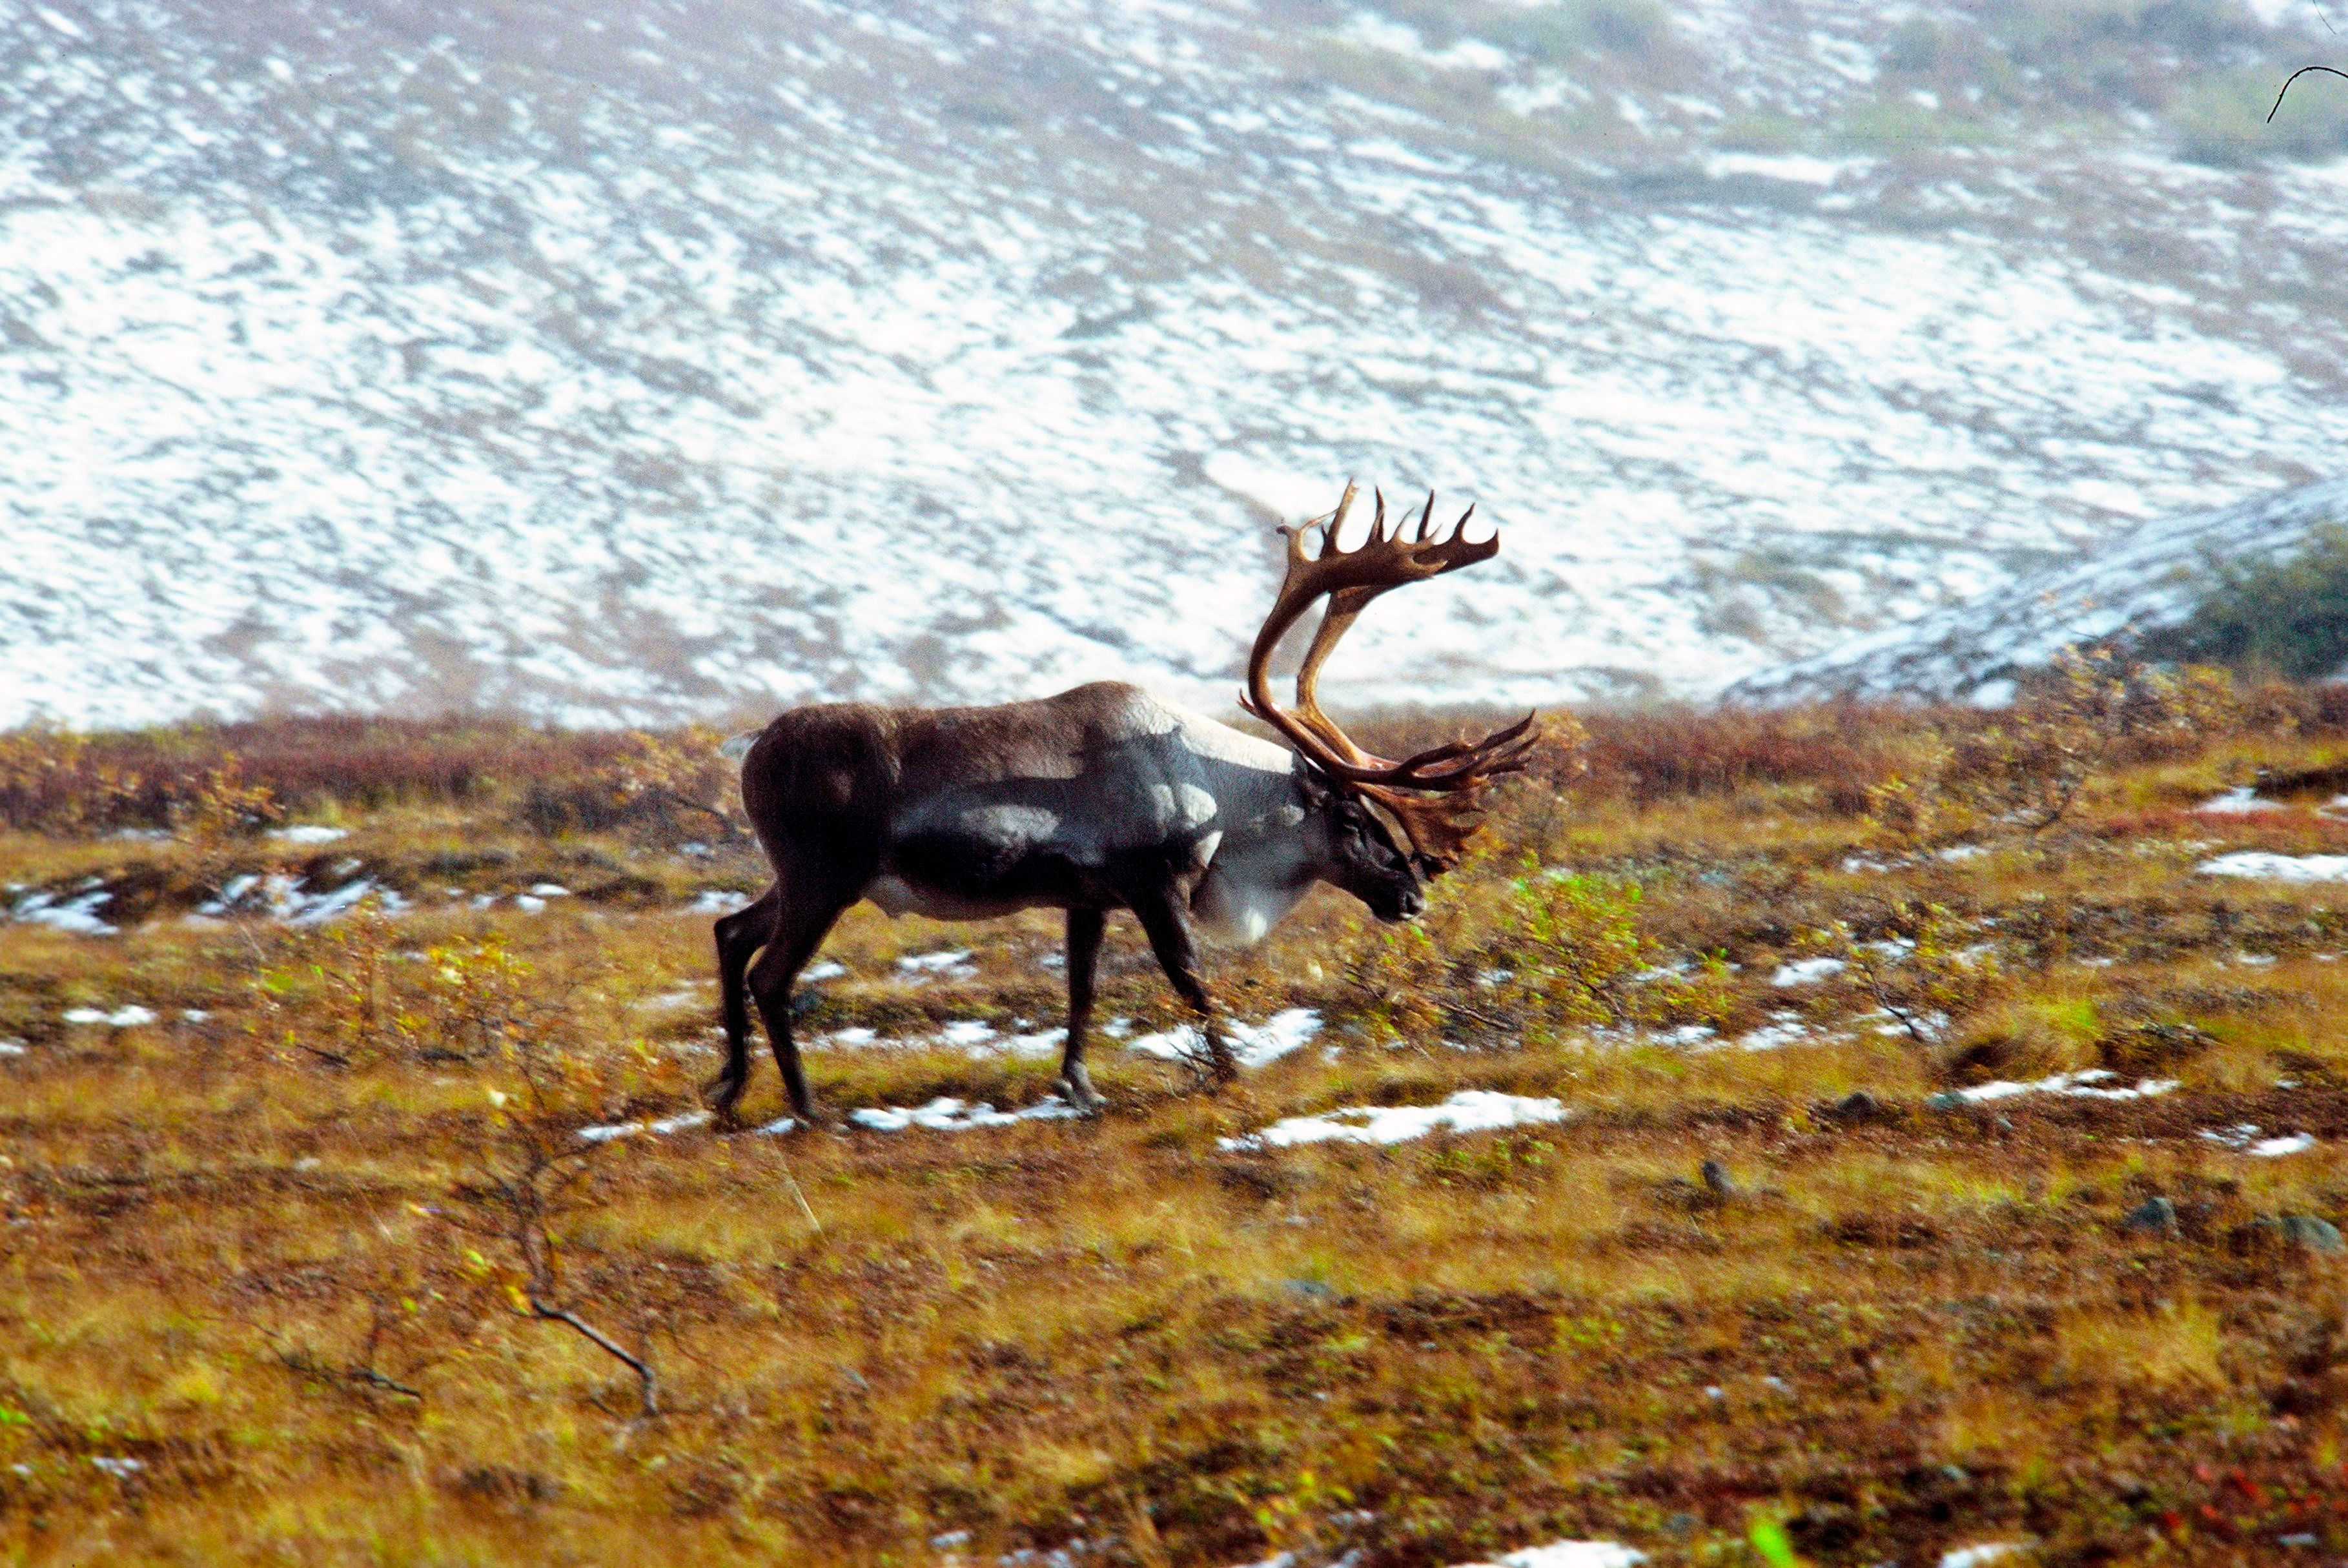 Alaska, Arctic National Wildlife Refuge, ANWR,, Bull Caribou. (Photo by: Education Images/UIG via Getty Images)